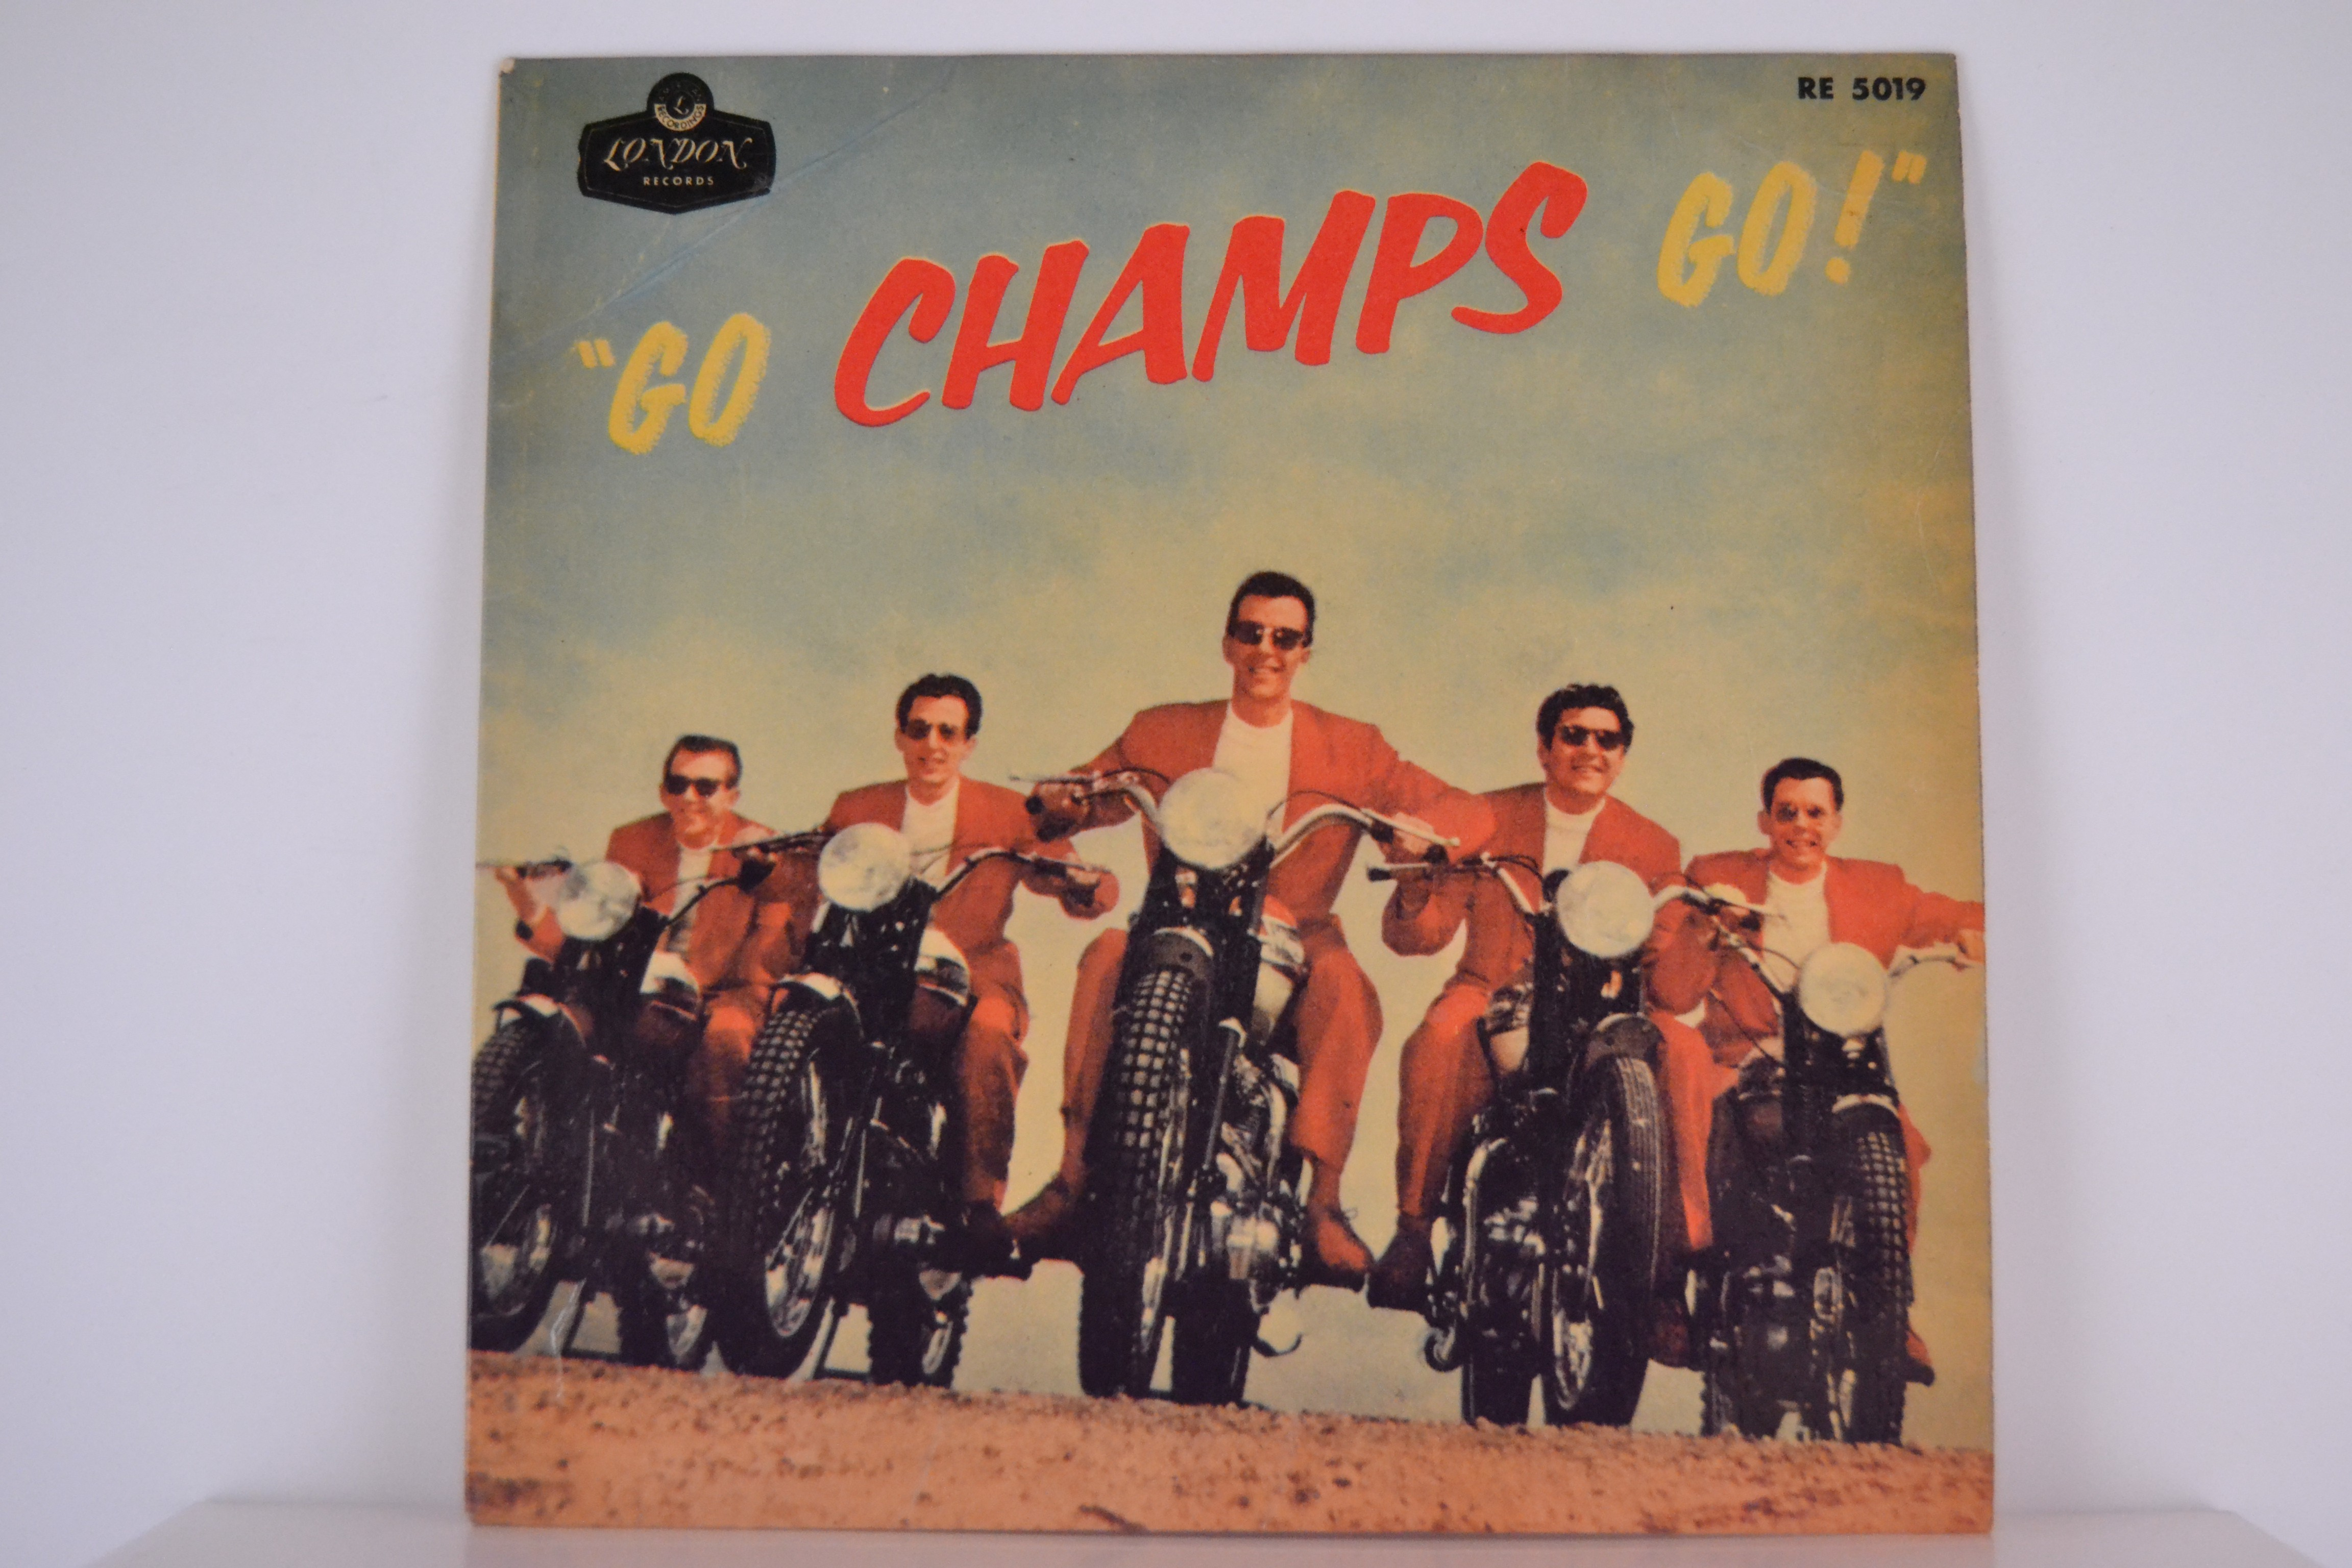 CHAMPS : (EP) Tequila / Train to nowhere / El rancho rock / Midnighter